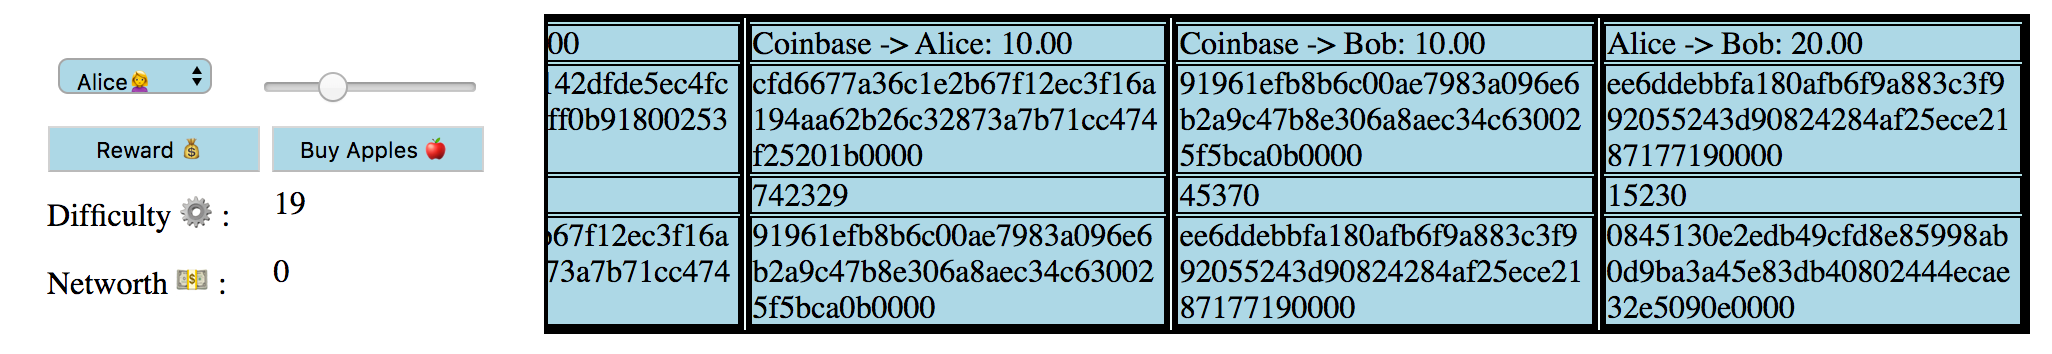 Alice-instance-buyApples1-blockchainView.png